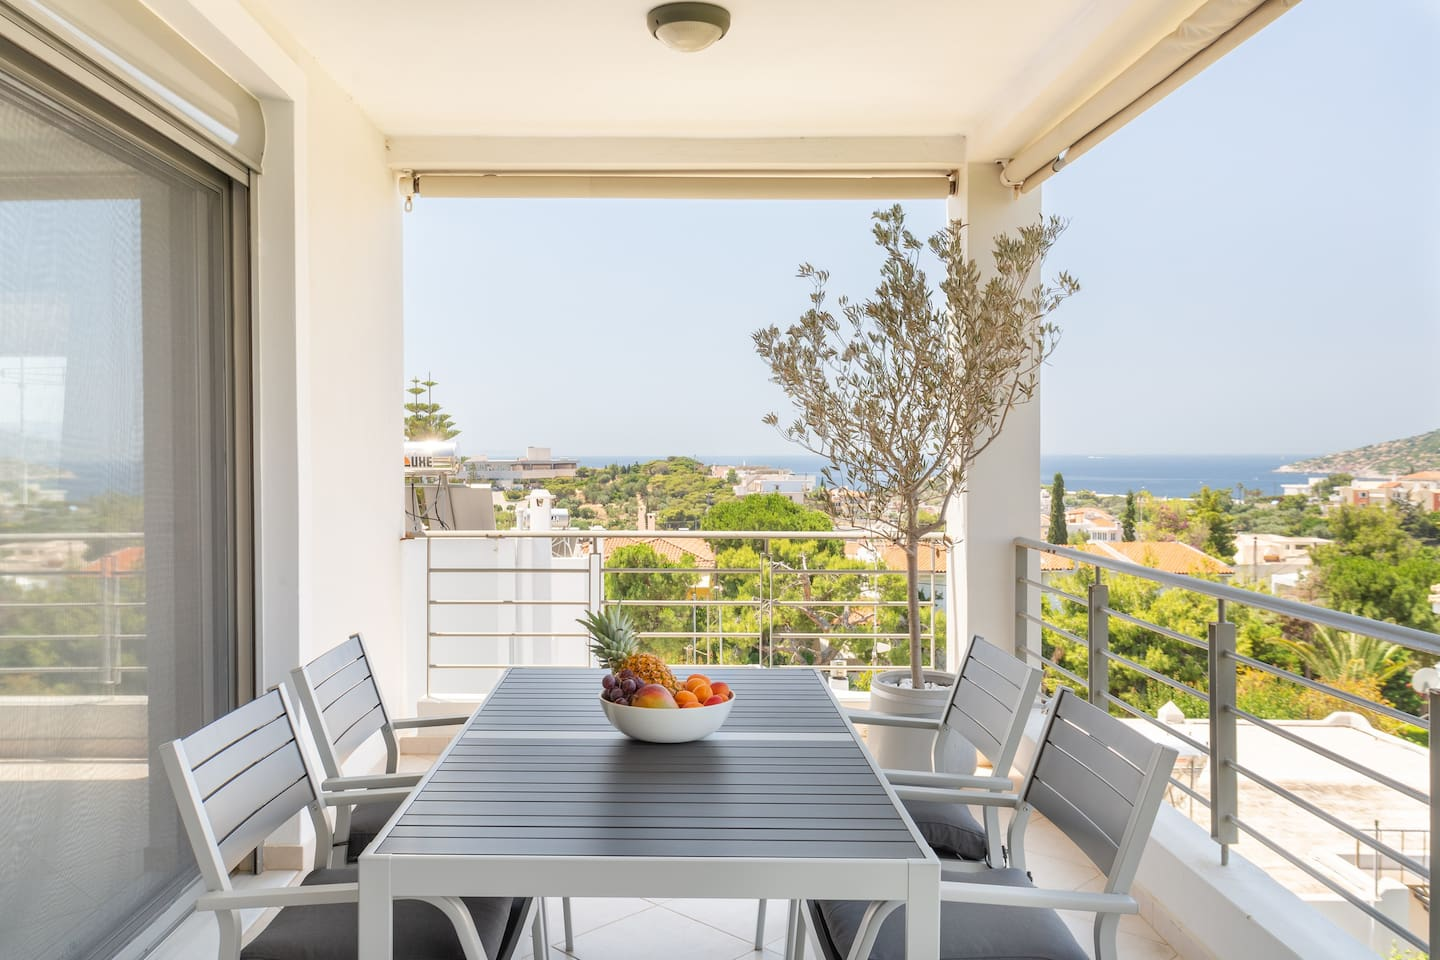 Spacious outdoor living area to enjoy all day round! This big balcony is equipped with an outdoor dining table and features amazing views to the sea.